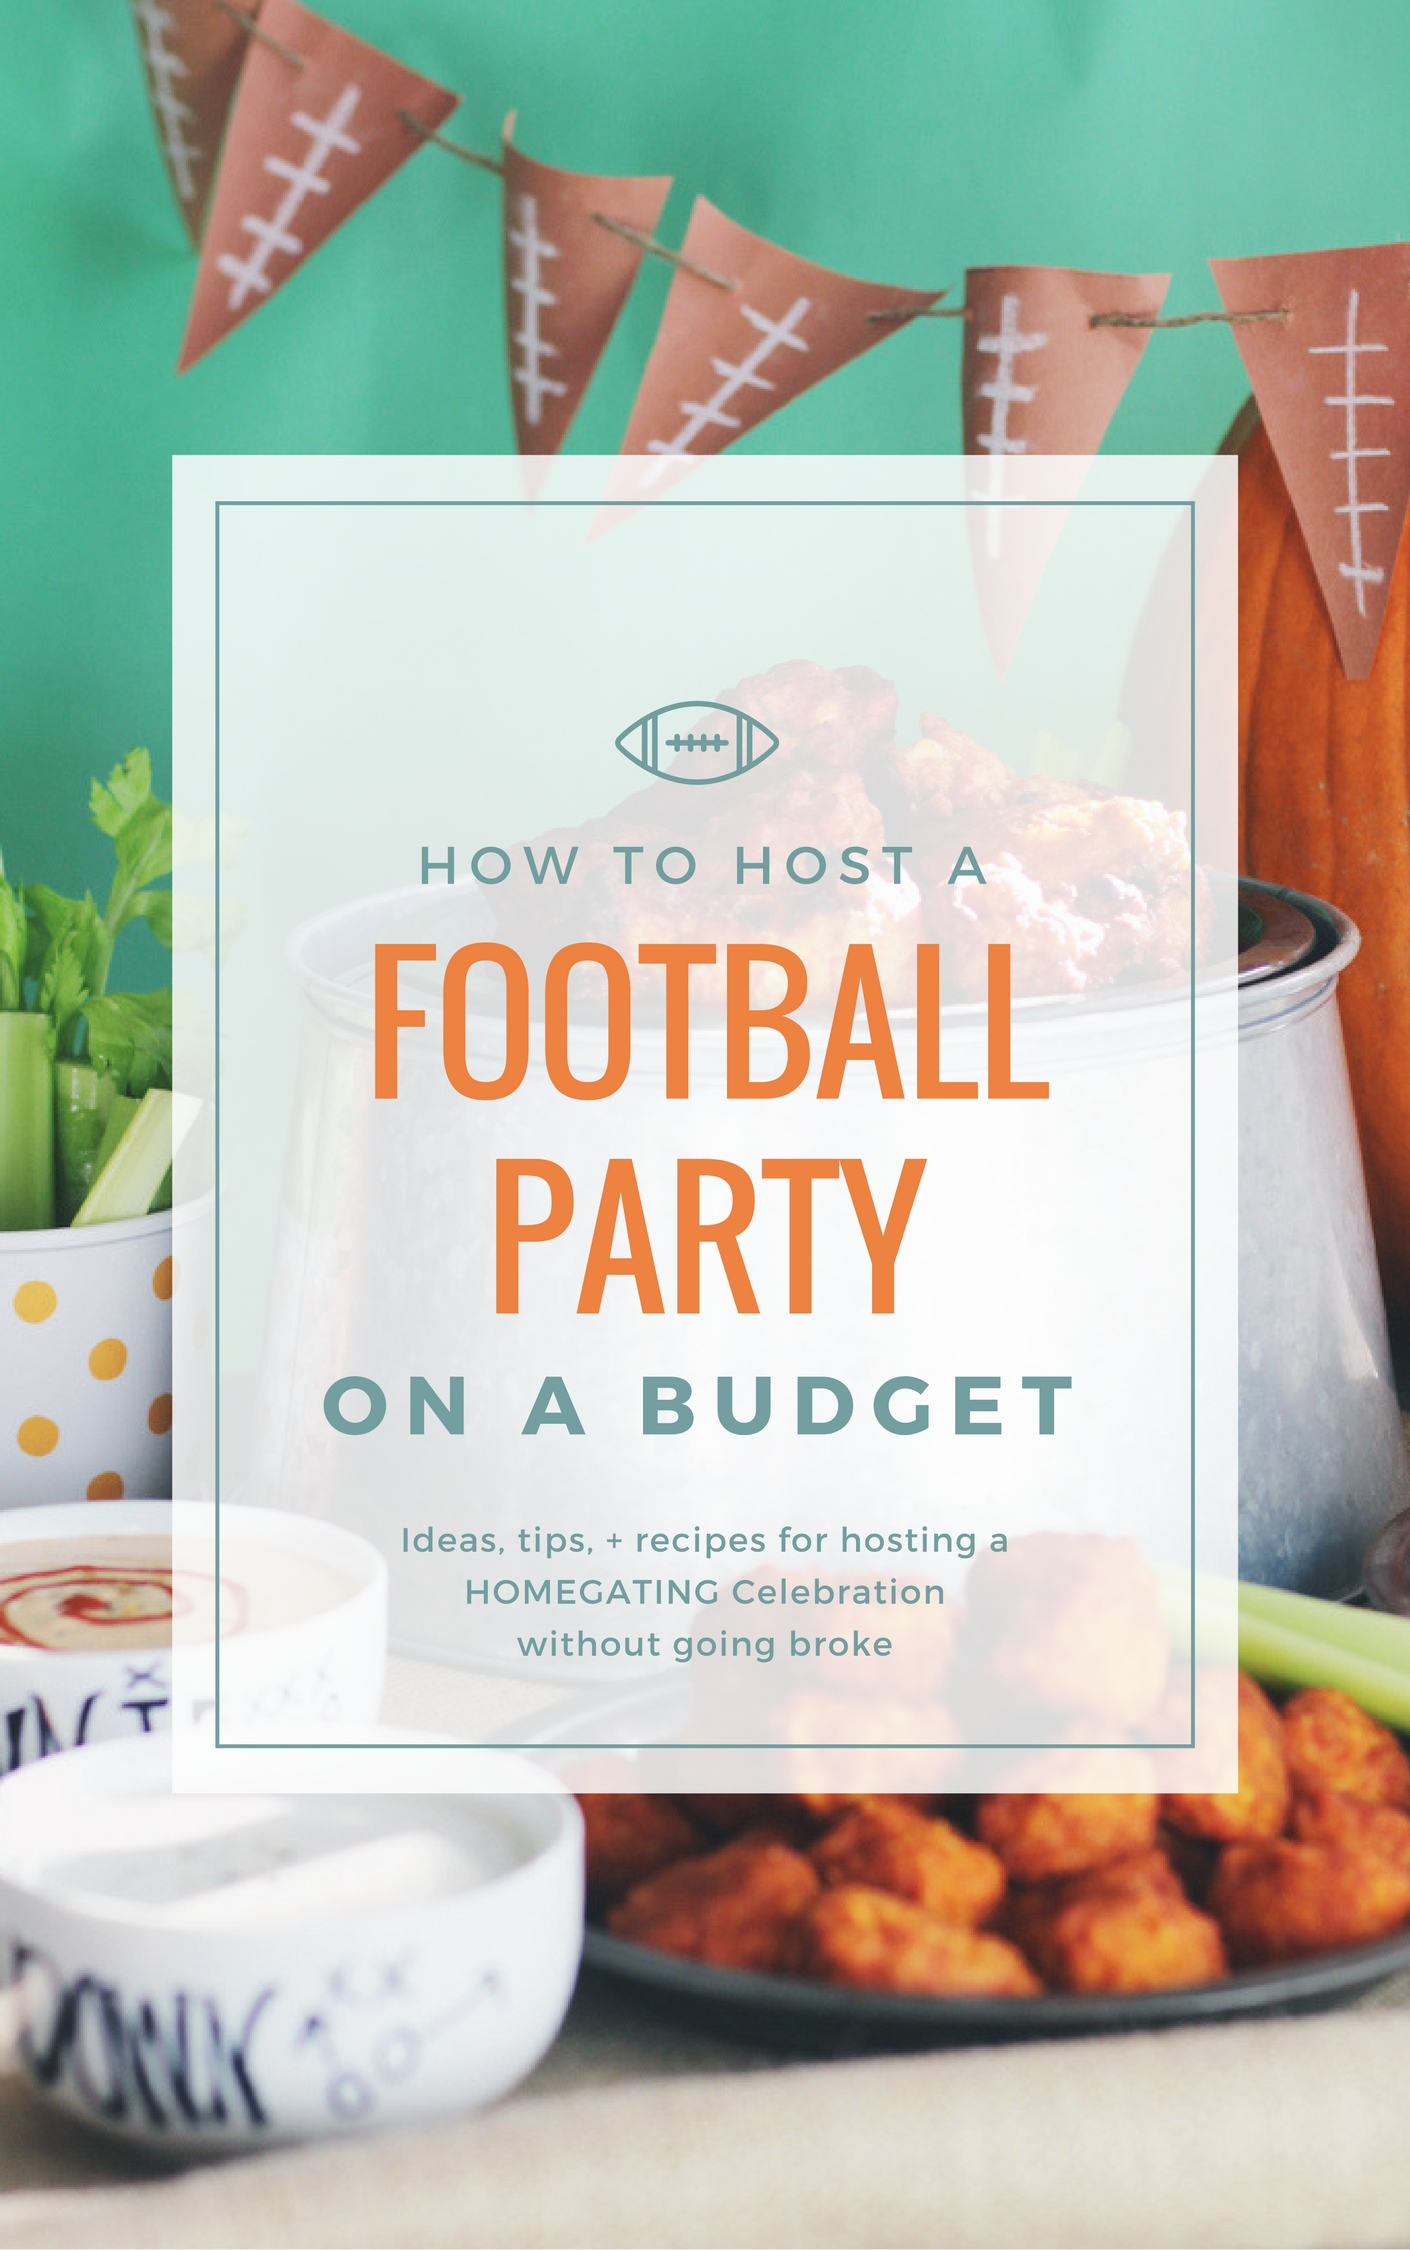 How to Host a Football Party on a Budget. Get our easy ideas, tips + recipes and stretch your game day dollar.  #homegating #footballparty #footballpartyfood